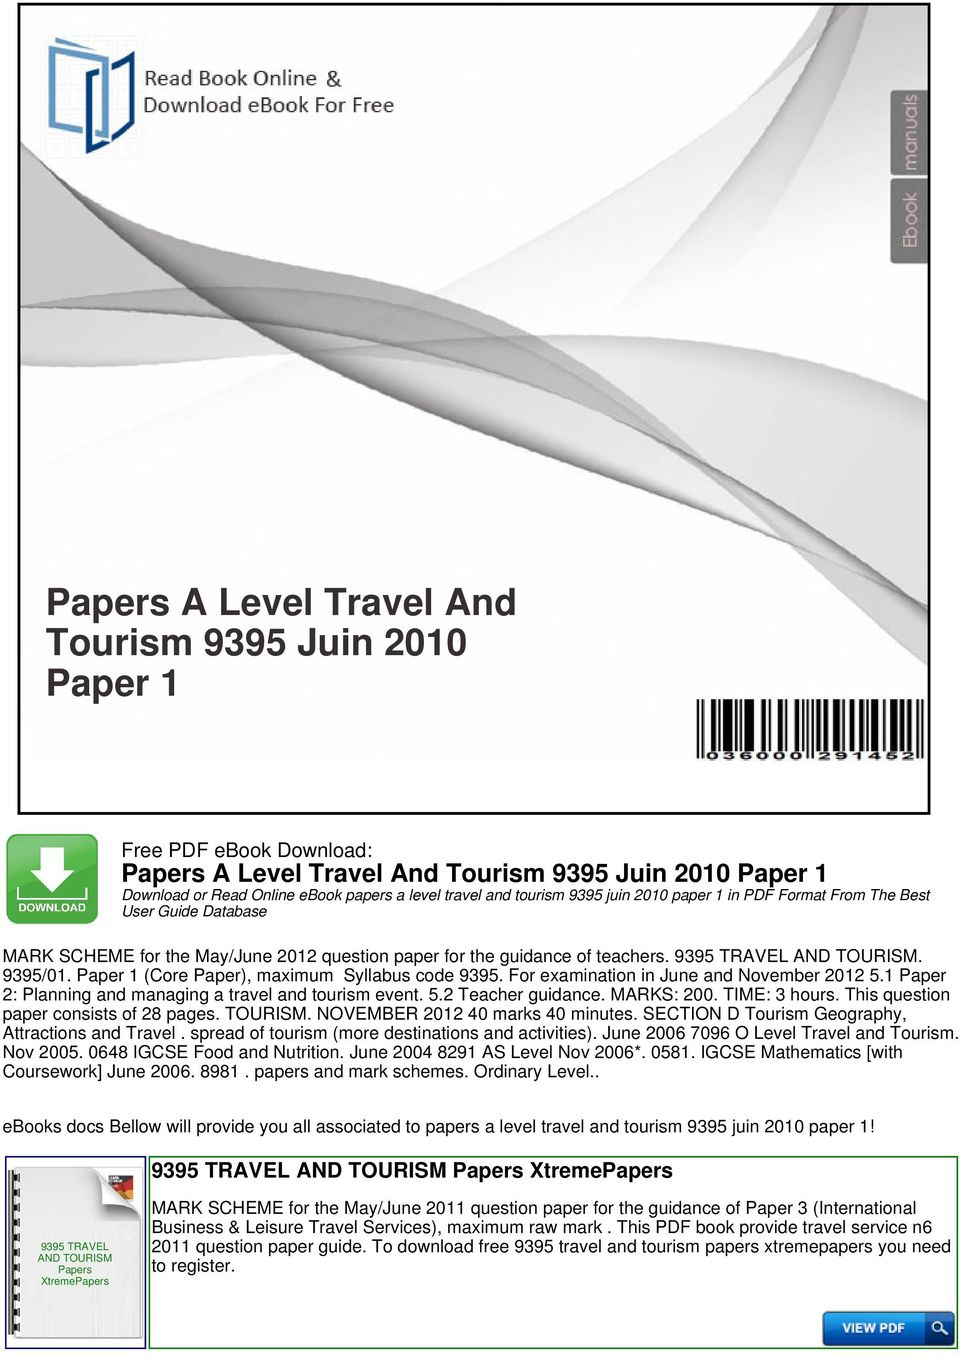 For examination in June and November 2012 5.1 Paper 2: Planning and managing a travel and tourism event. 5.2 Teacher guidance. MARKS: 200. TIME: 3 hours. This question paper consists of 28 pages.